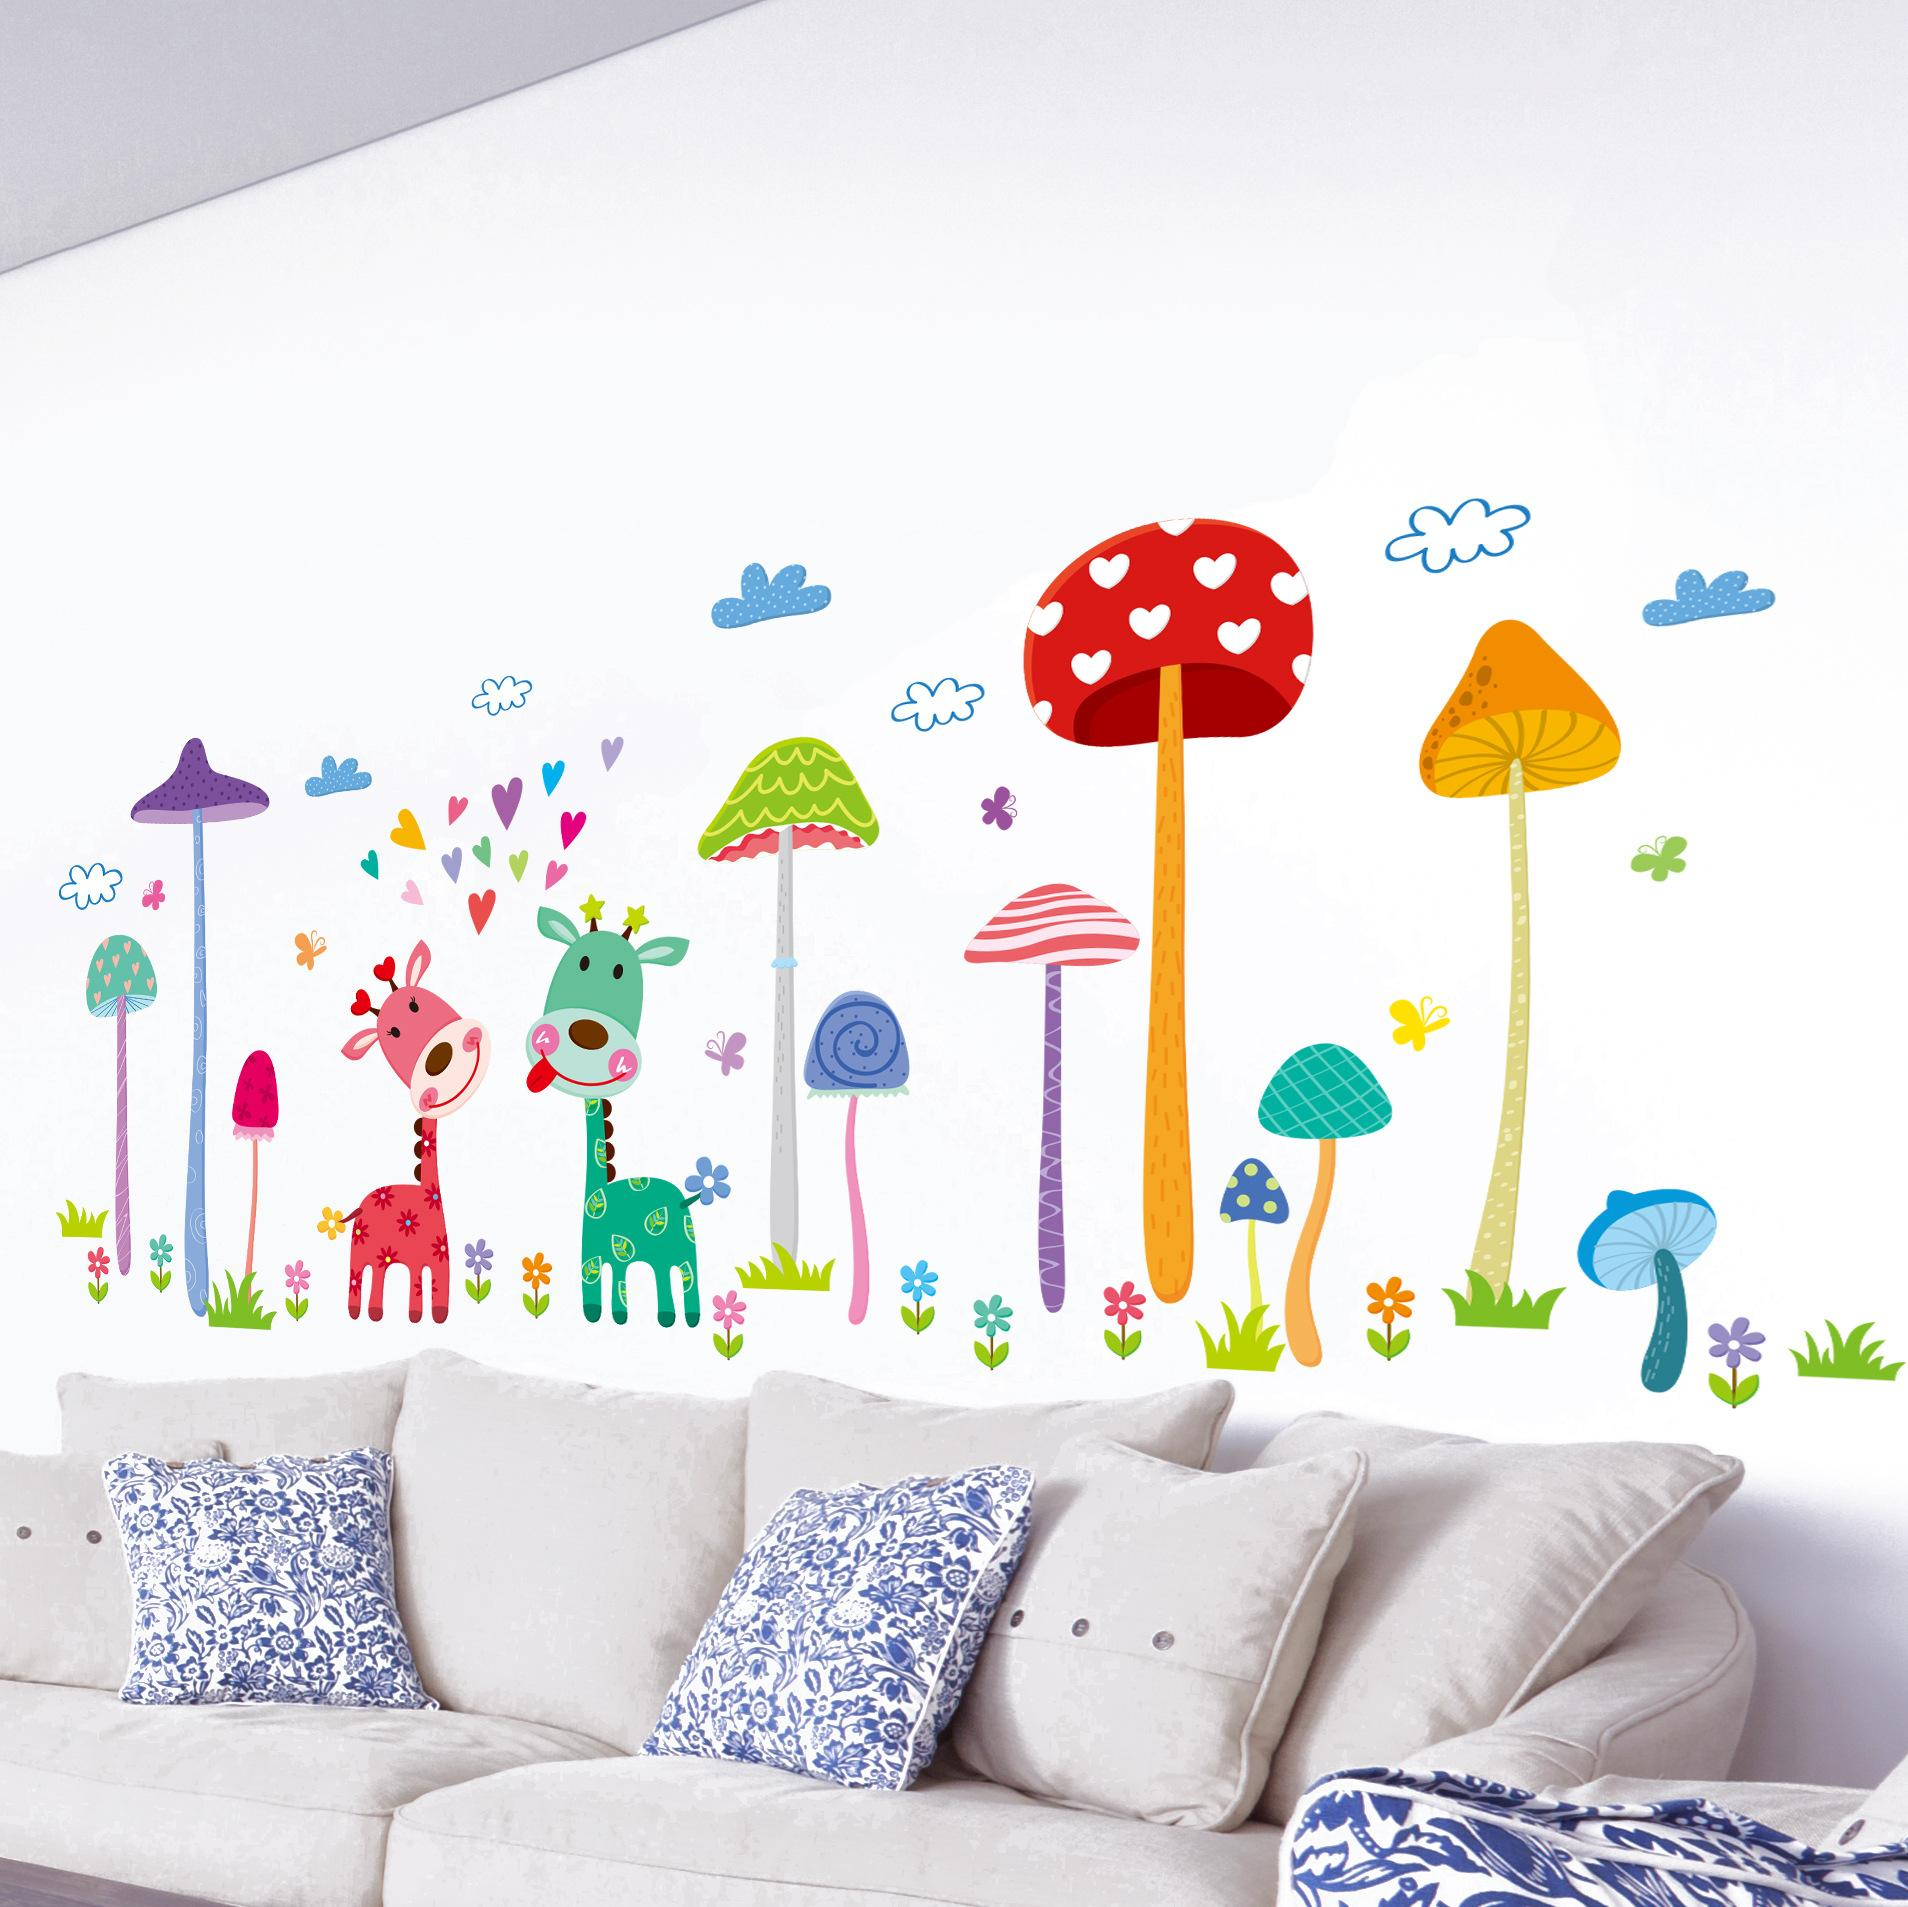 Forest Mushroom Deer Home Wall Art Mural Decor Kids Babies Room Nursery  Lovely Animals Family Wallpaper Decoration Decal Wall Applique Large Removable  Wall ... Part 75